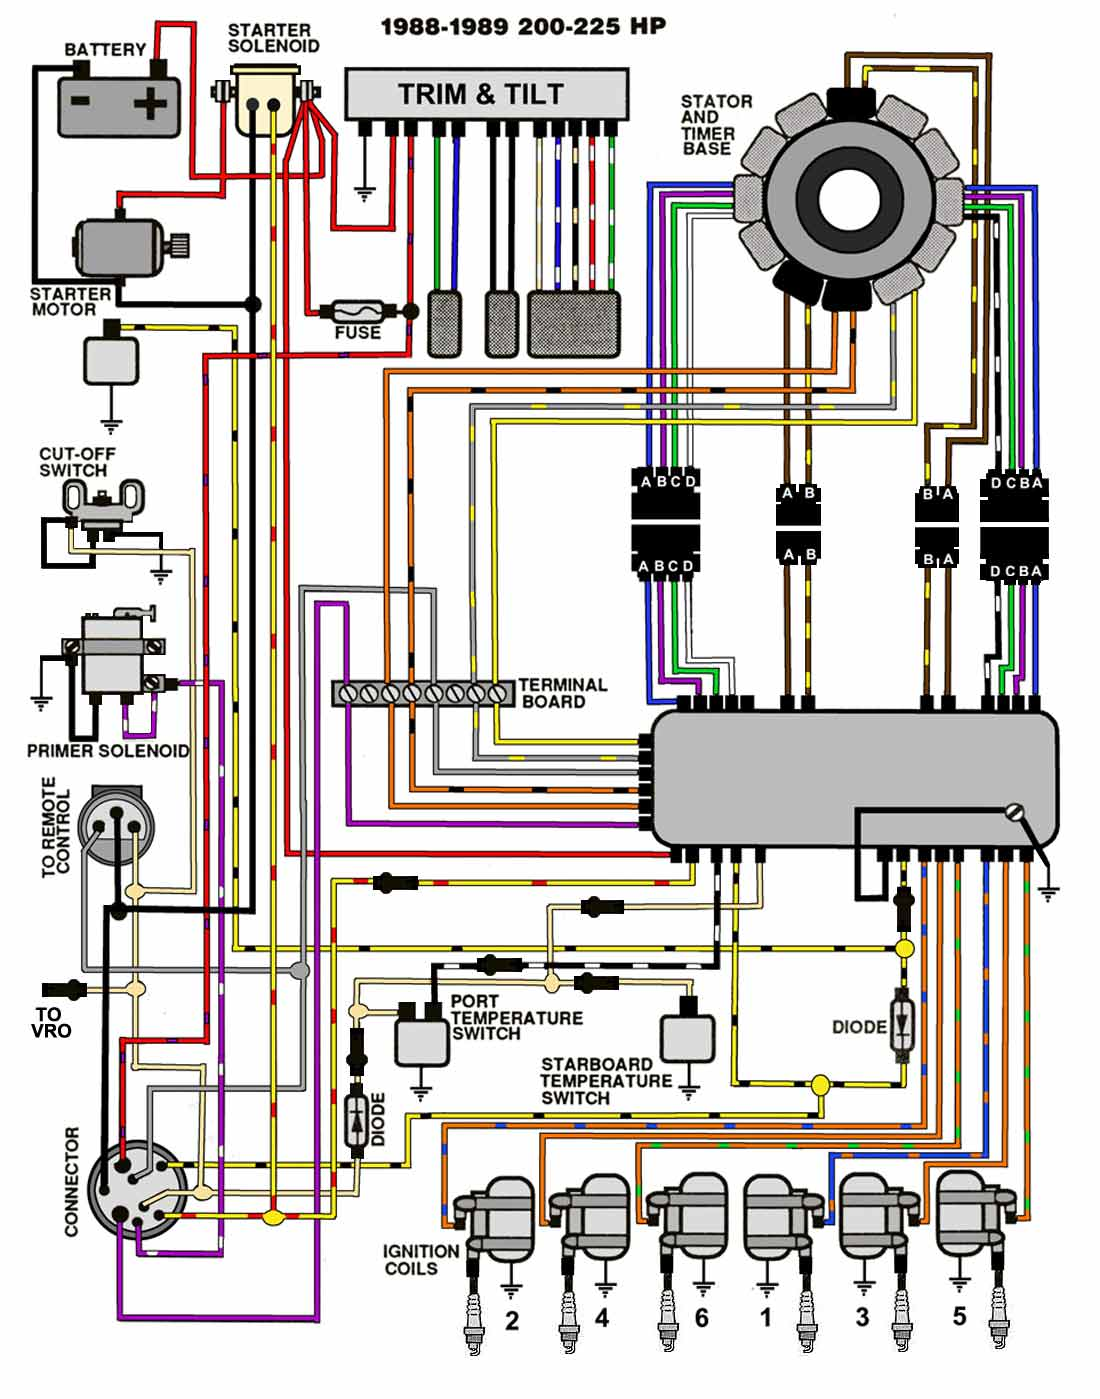 1988_89_200_225 mastertech marine evinrude johnson outboard wiring diagrams johnson outboard wiring schematic at webbmarketing.co